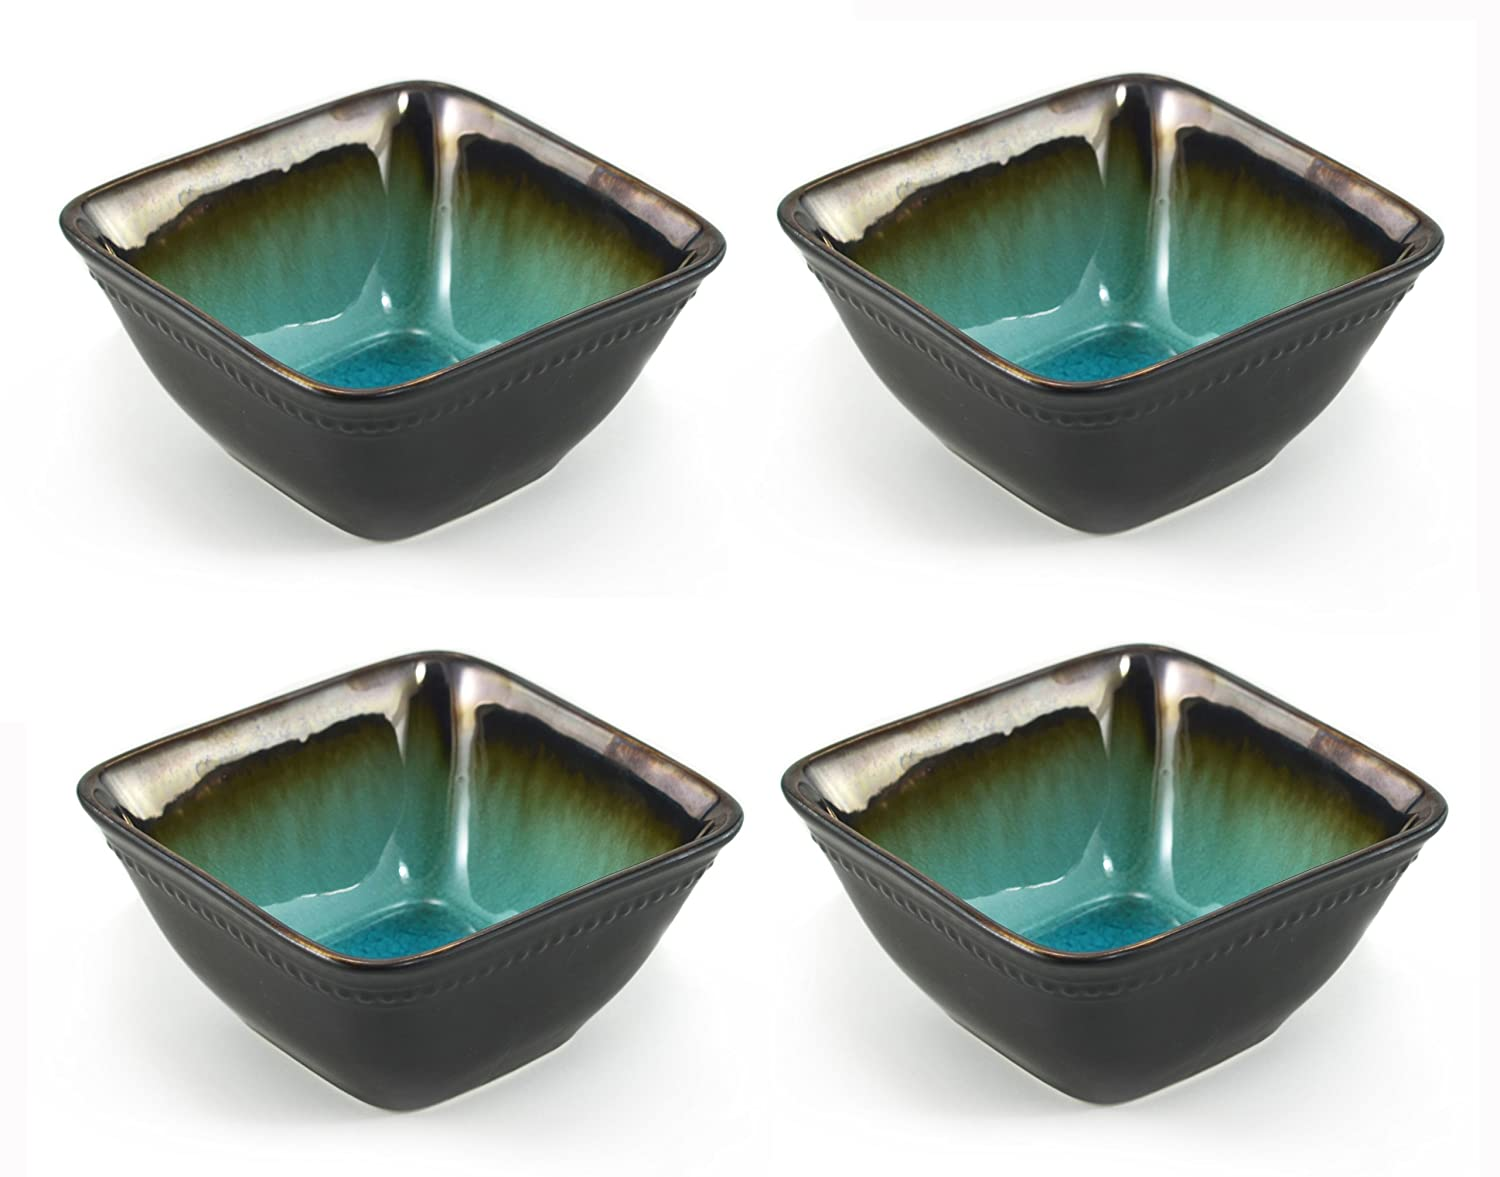 Tannex Bali Square 4-Piece Bowl Set, 5.7-Inch 92277-4P